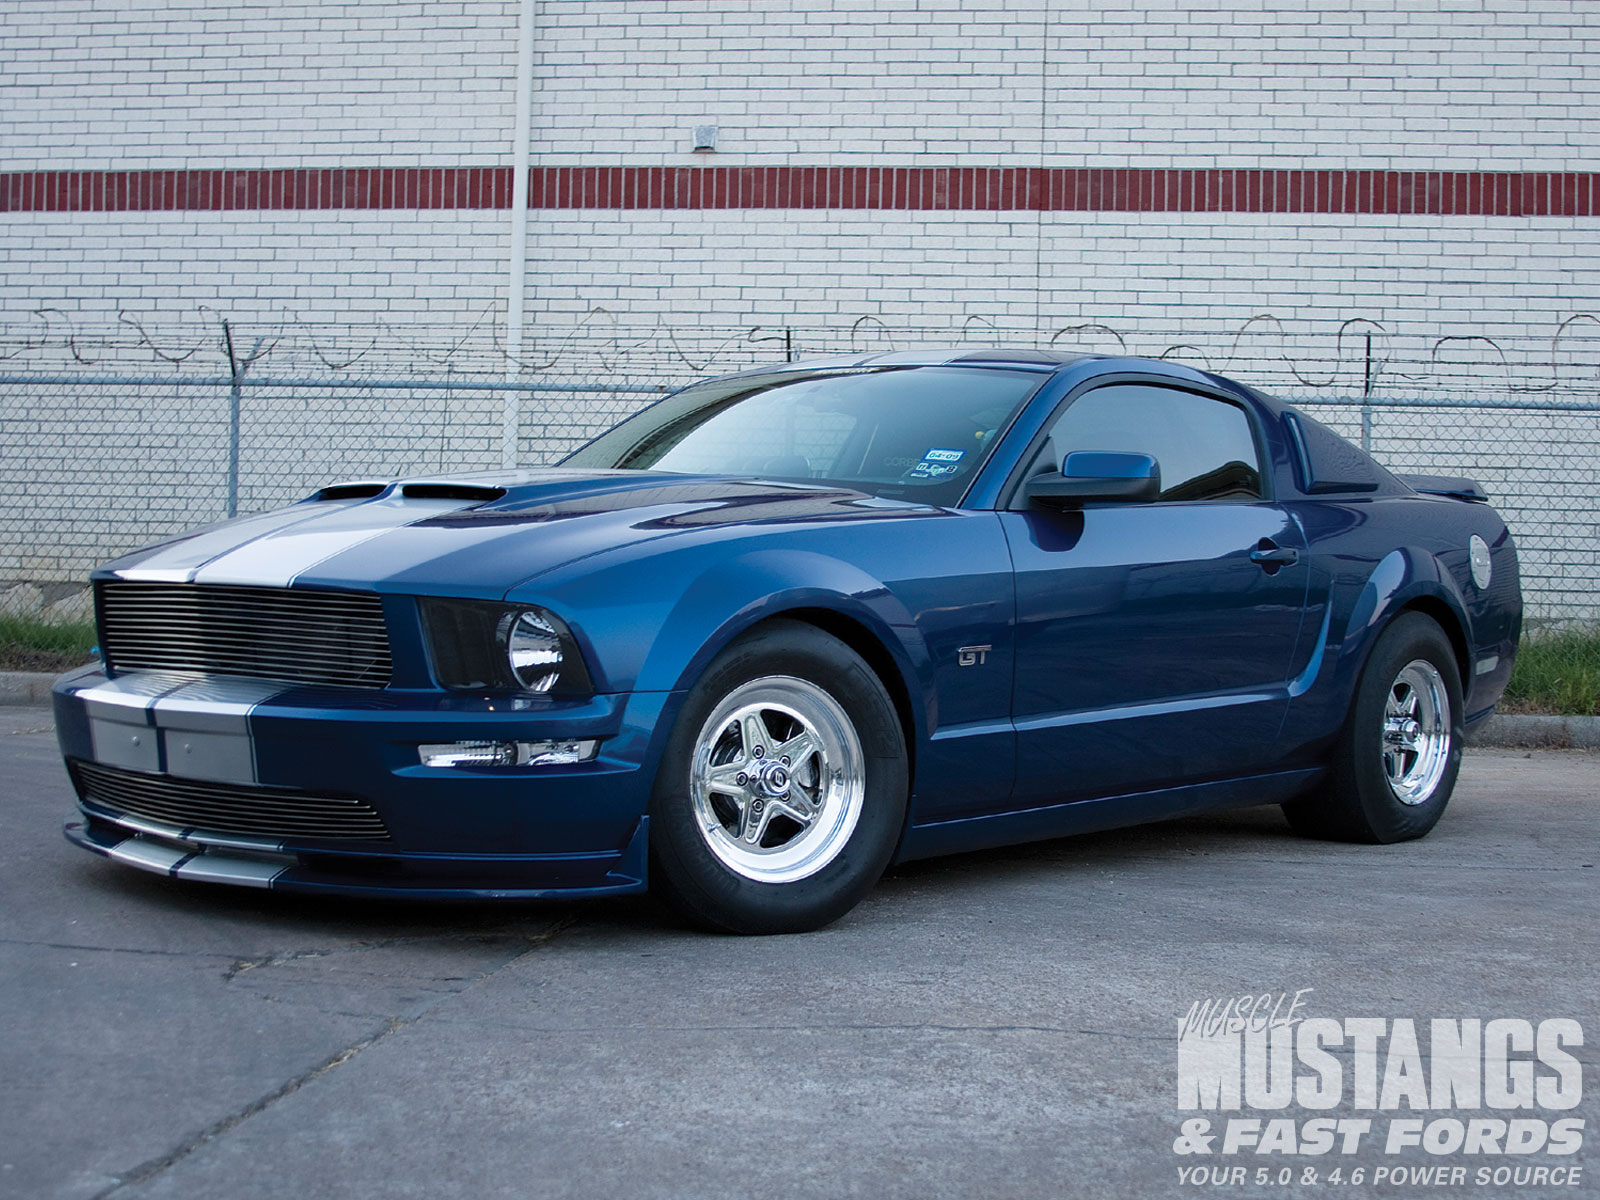 2007 Ford Mustang #2